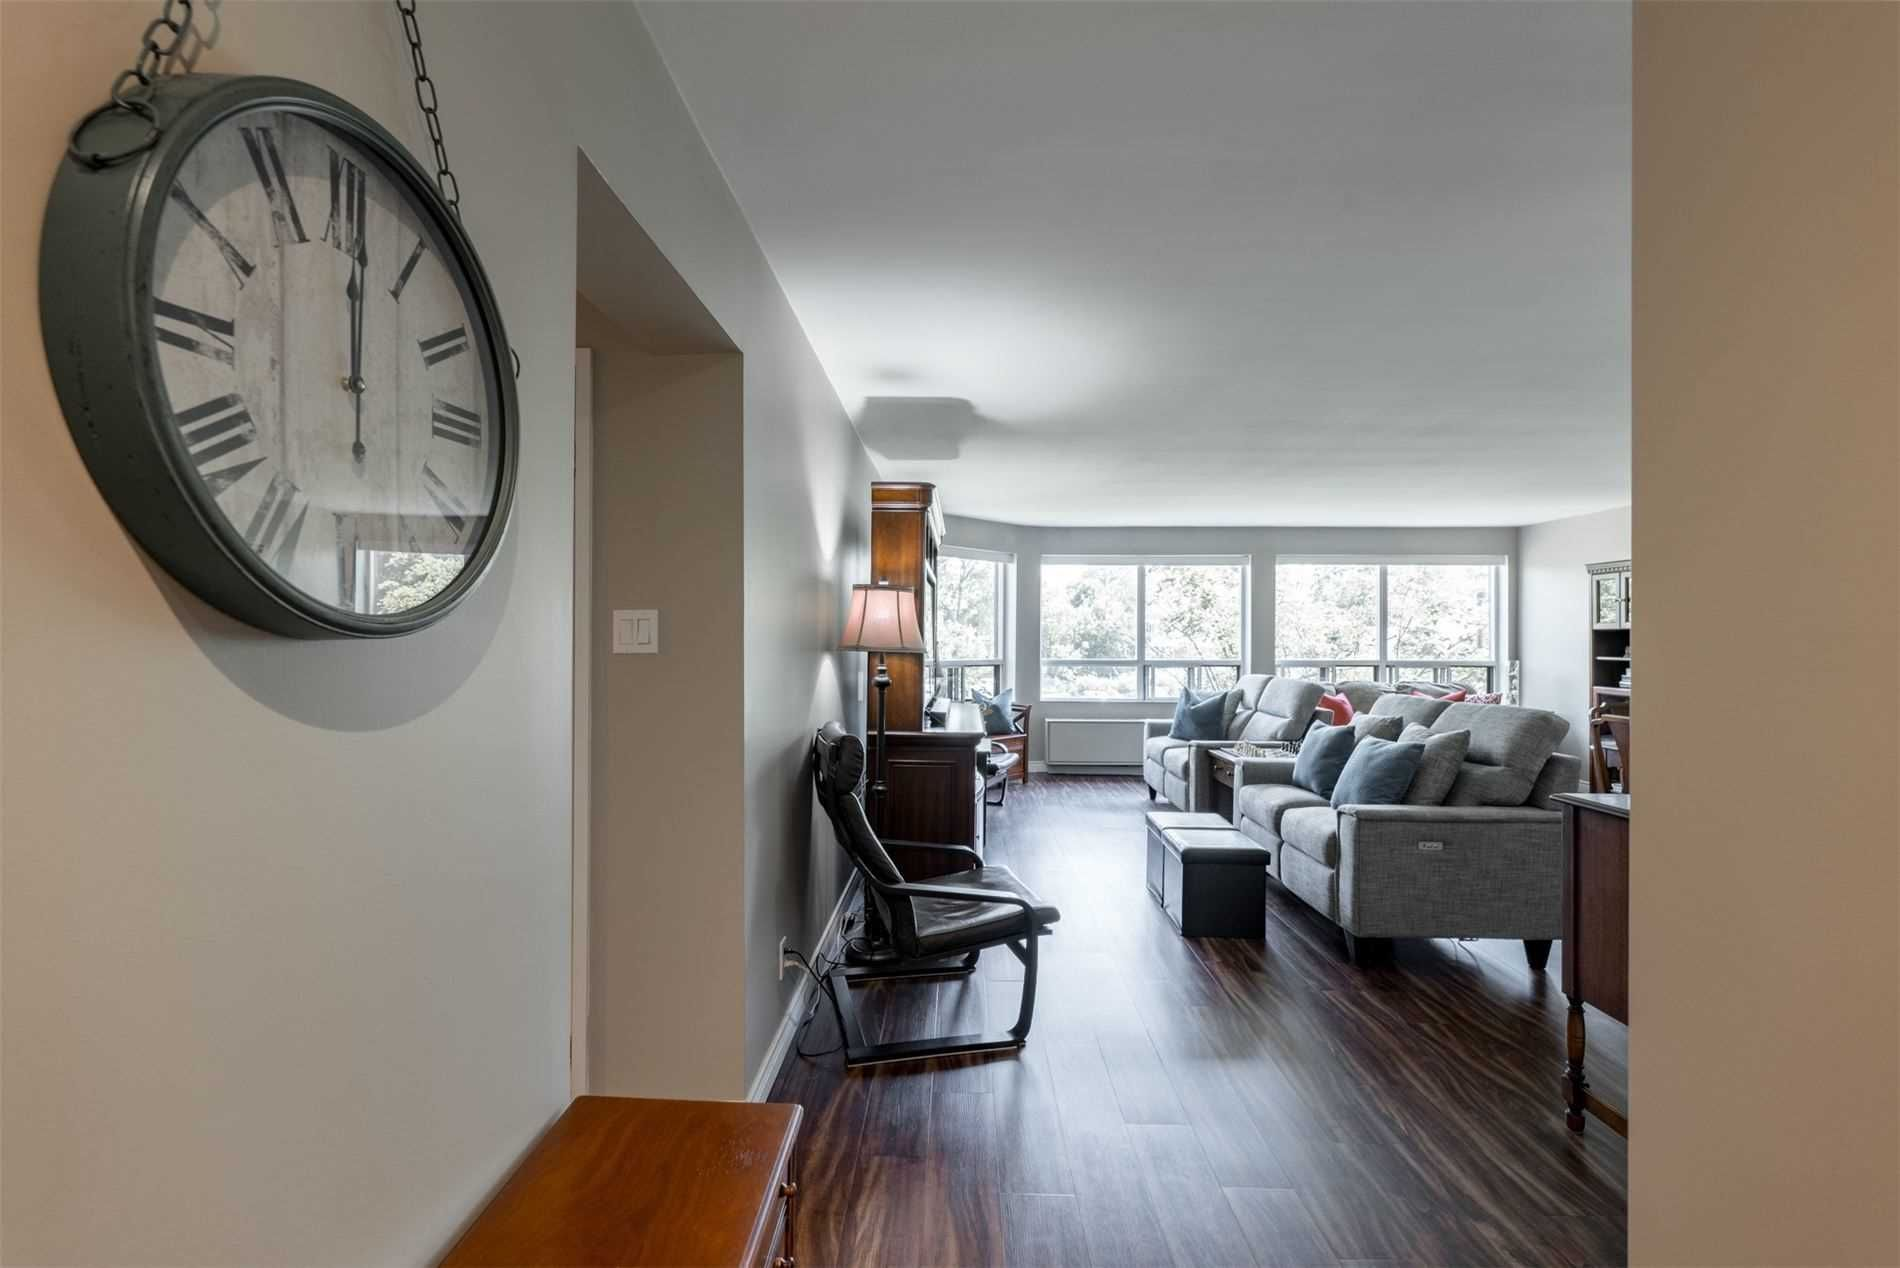 155 Main St N, unit 221 for sale in Toronto - image #2